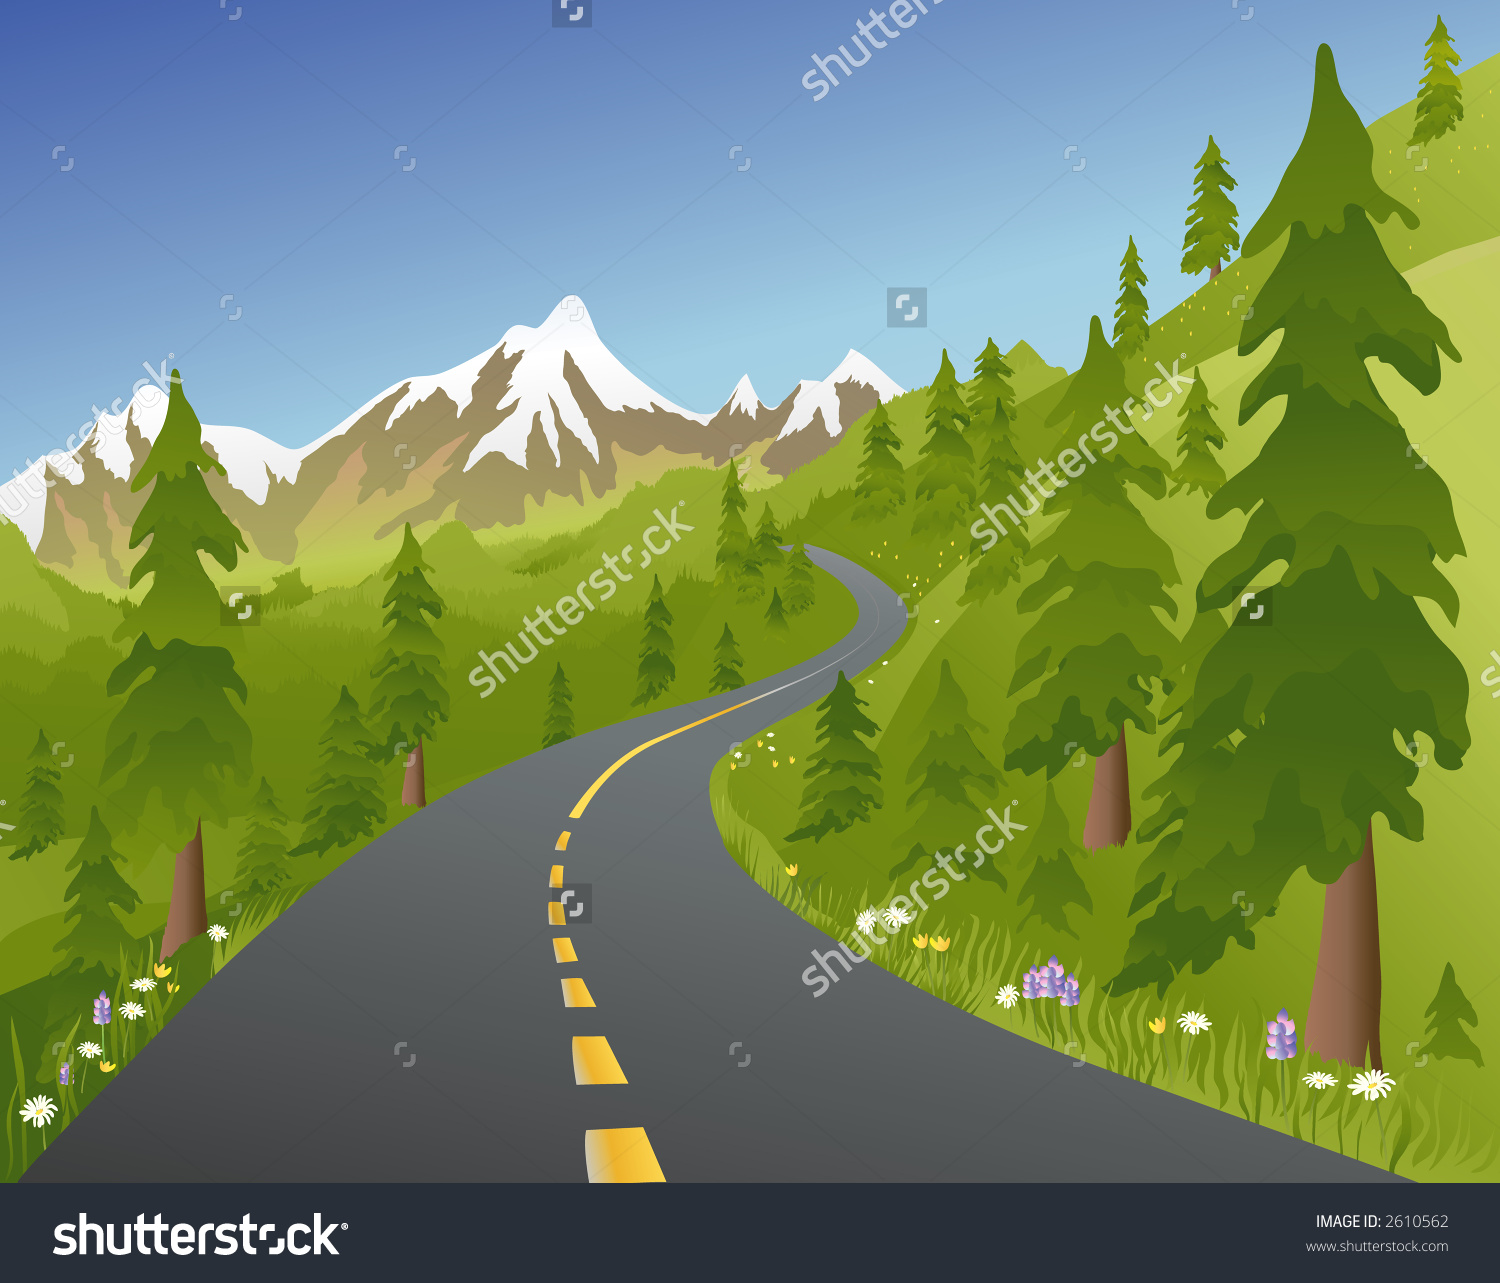 Road mountain clipart.